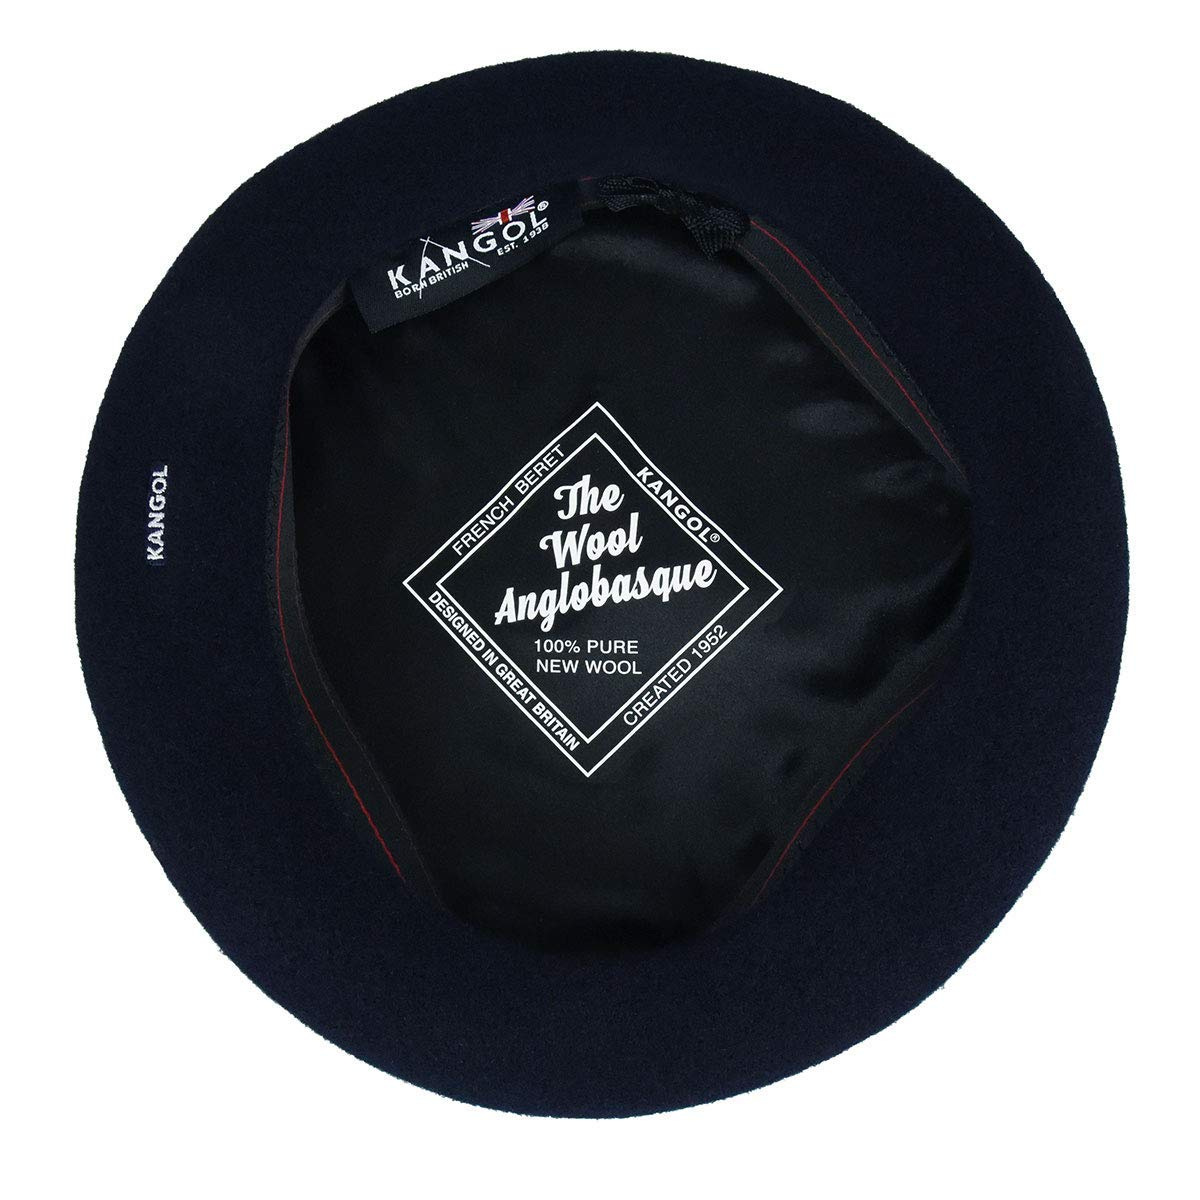 Kangol Men's Anglobasque Beret, From the Heritage Collection, Dark Blue (Large) by Kangol (Image #5)